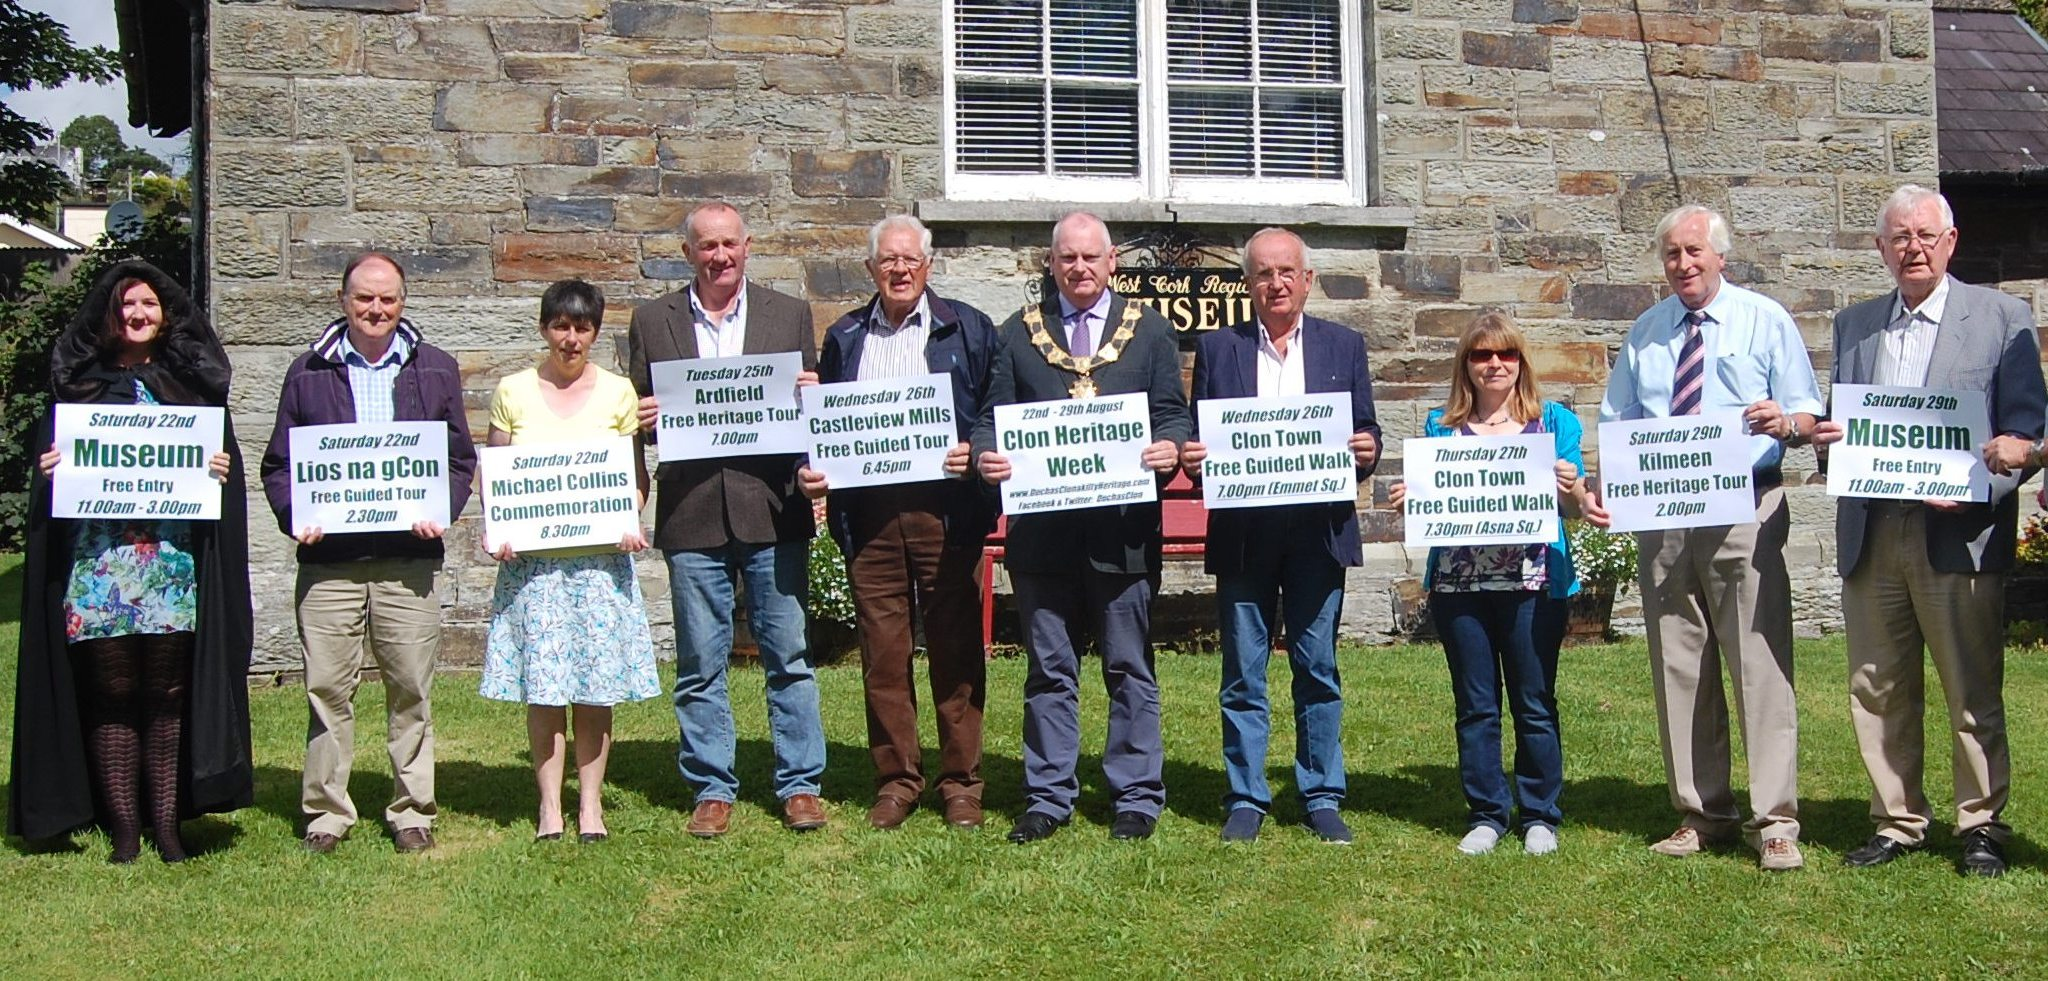 Clonakilty Heritage Week launched